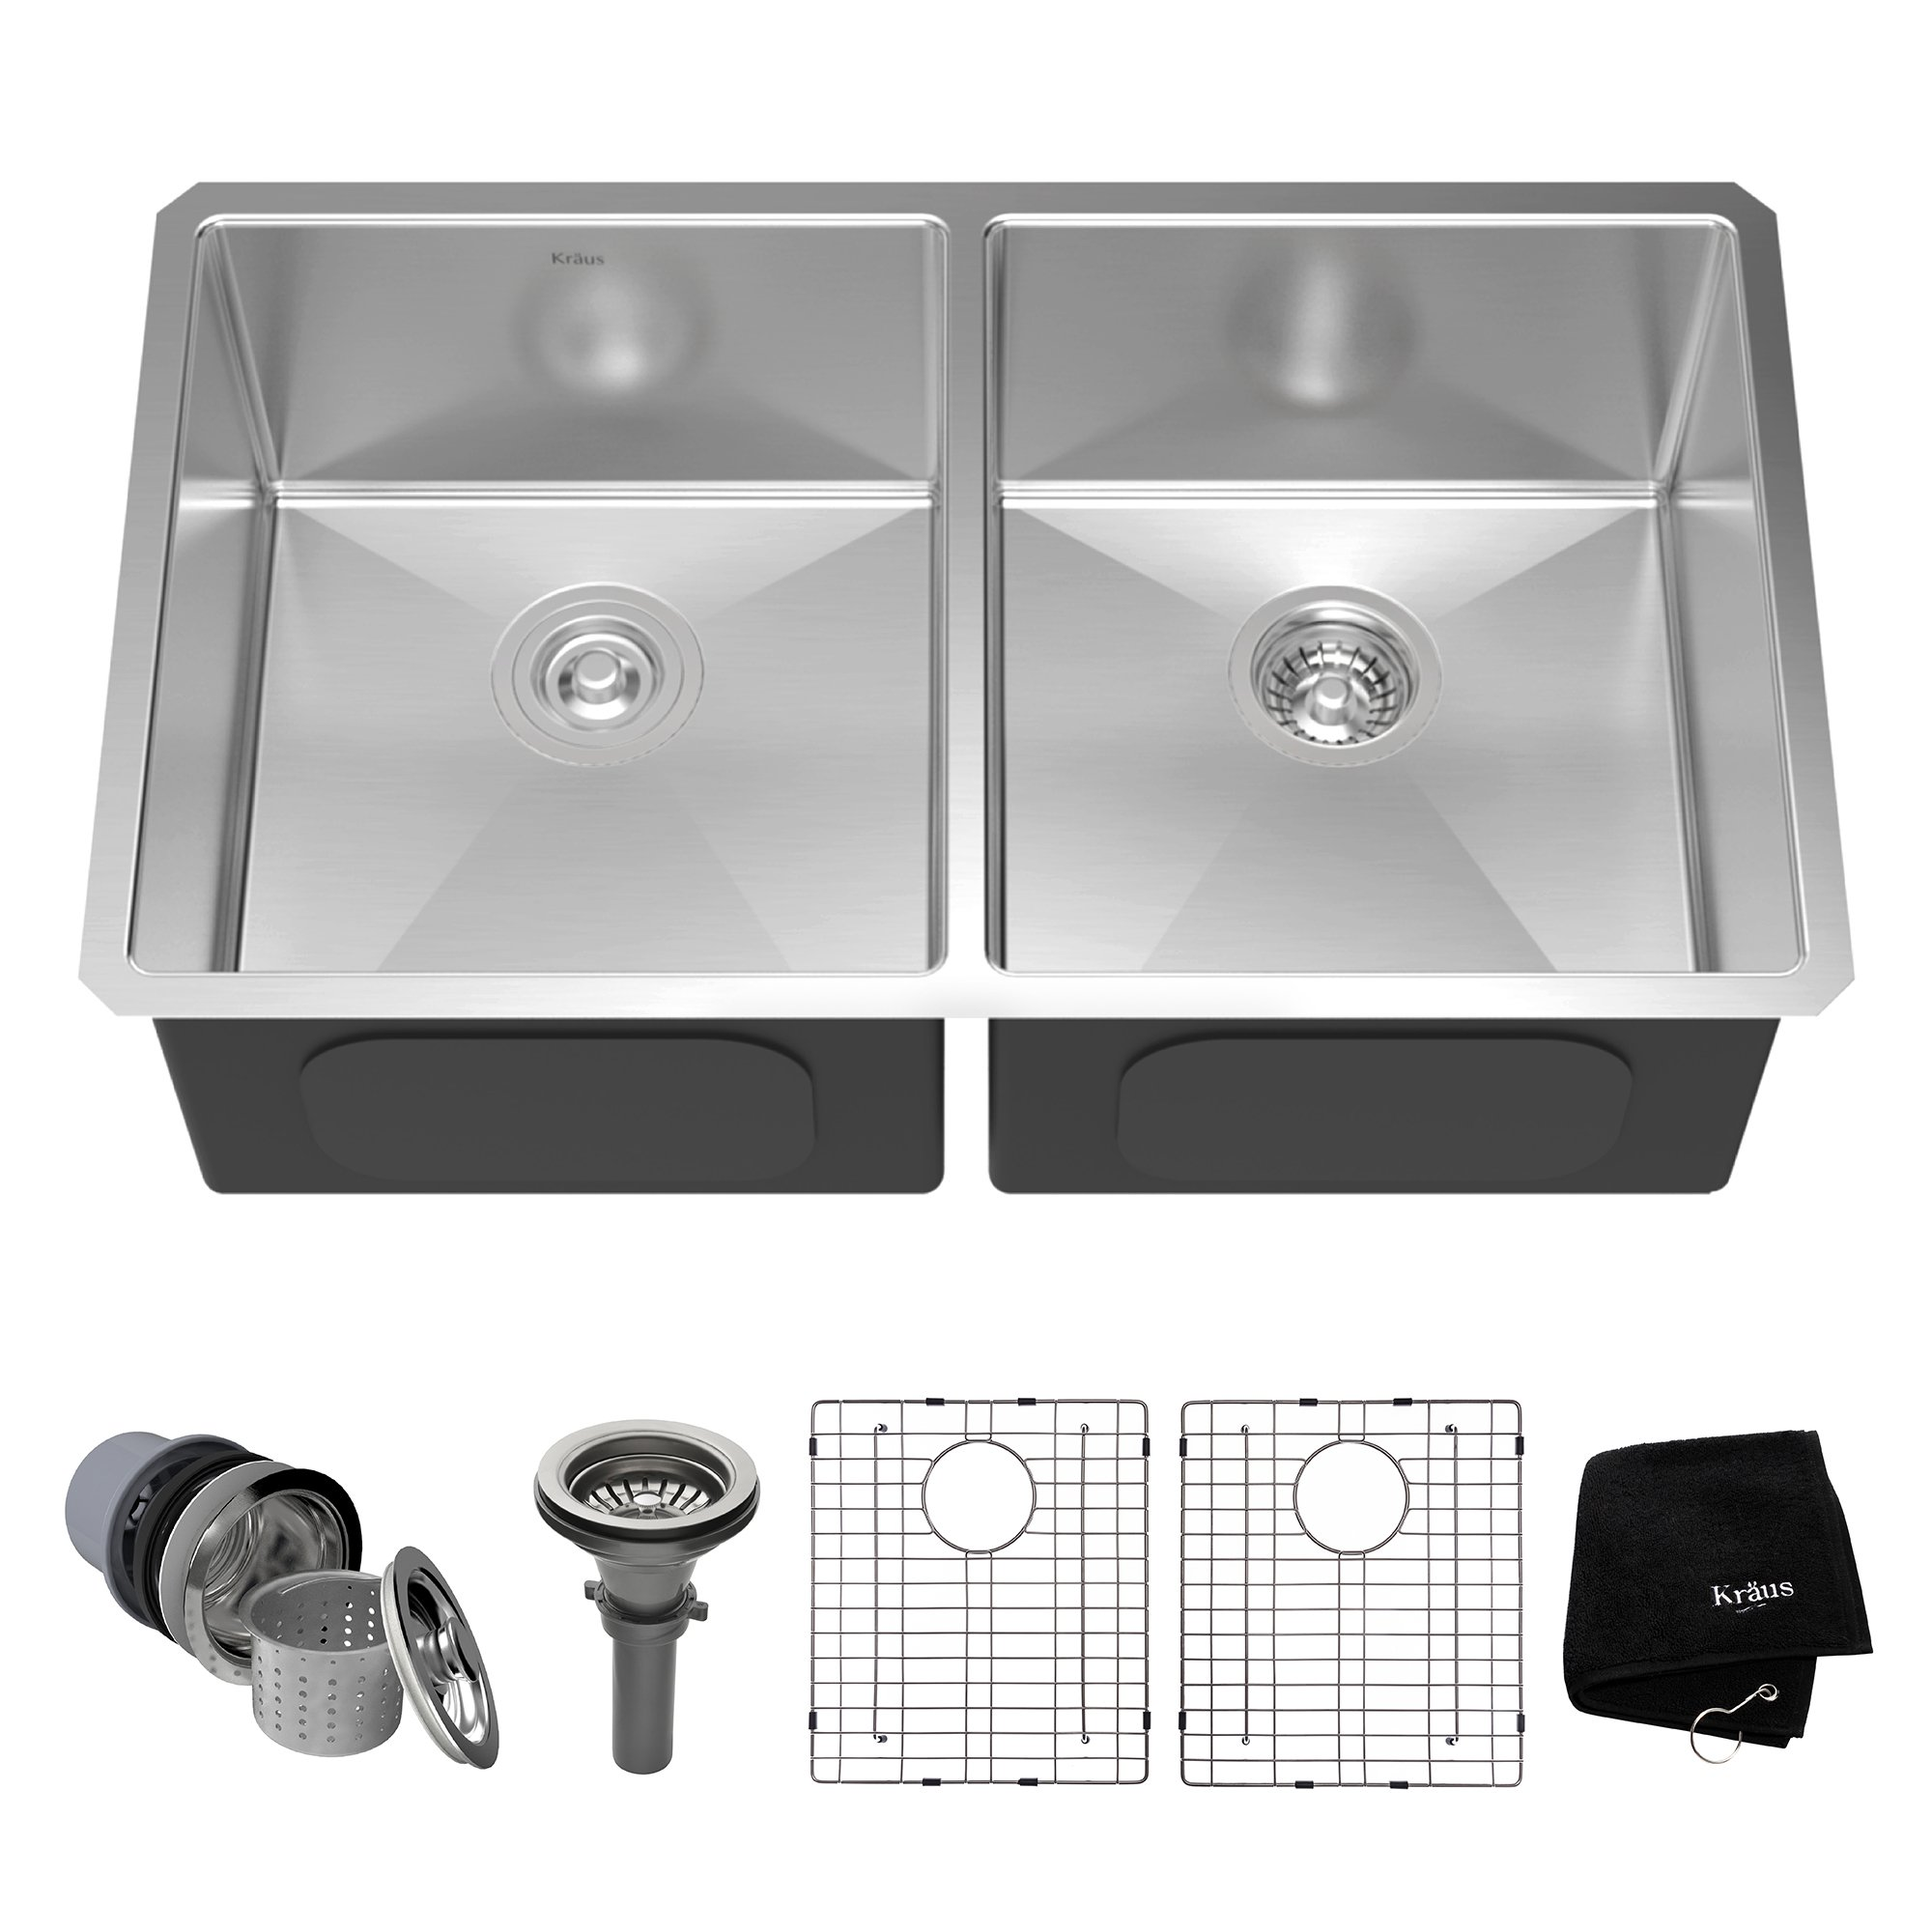 Kraus KHU102-33 33 inch Undermount 50/50 Double Bowl 16 gauge Stainless Steel Kitchen Sink by Kraus